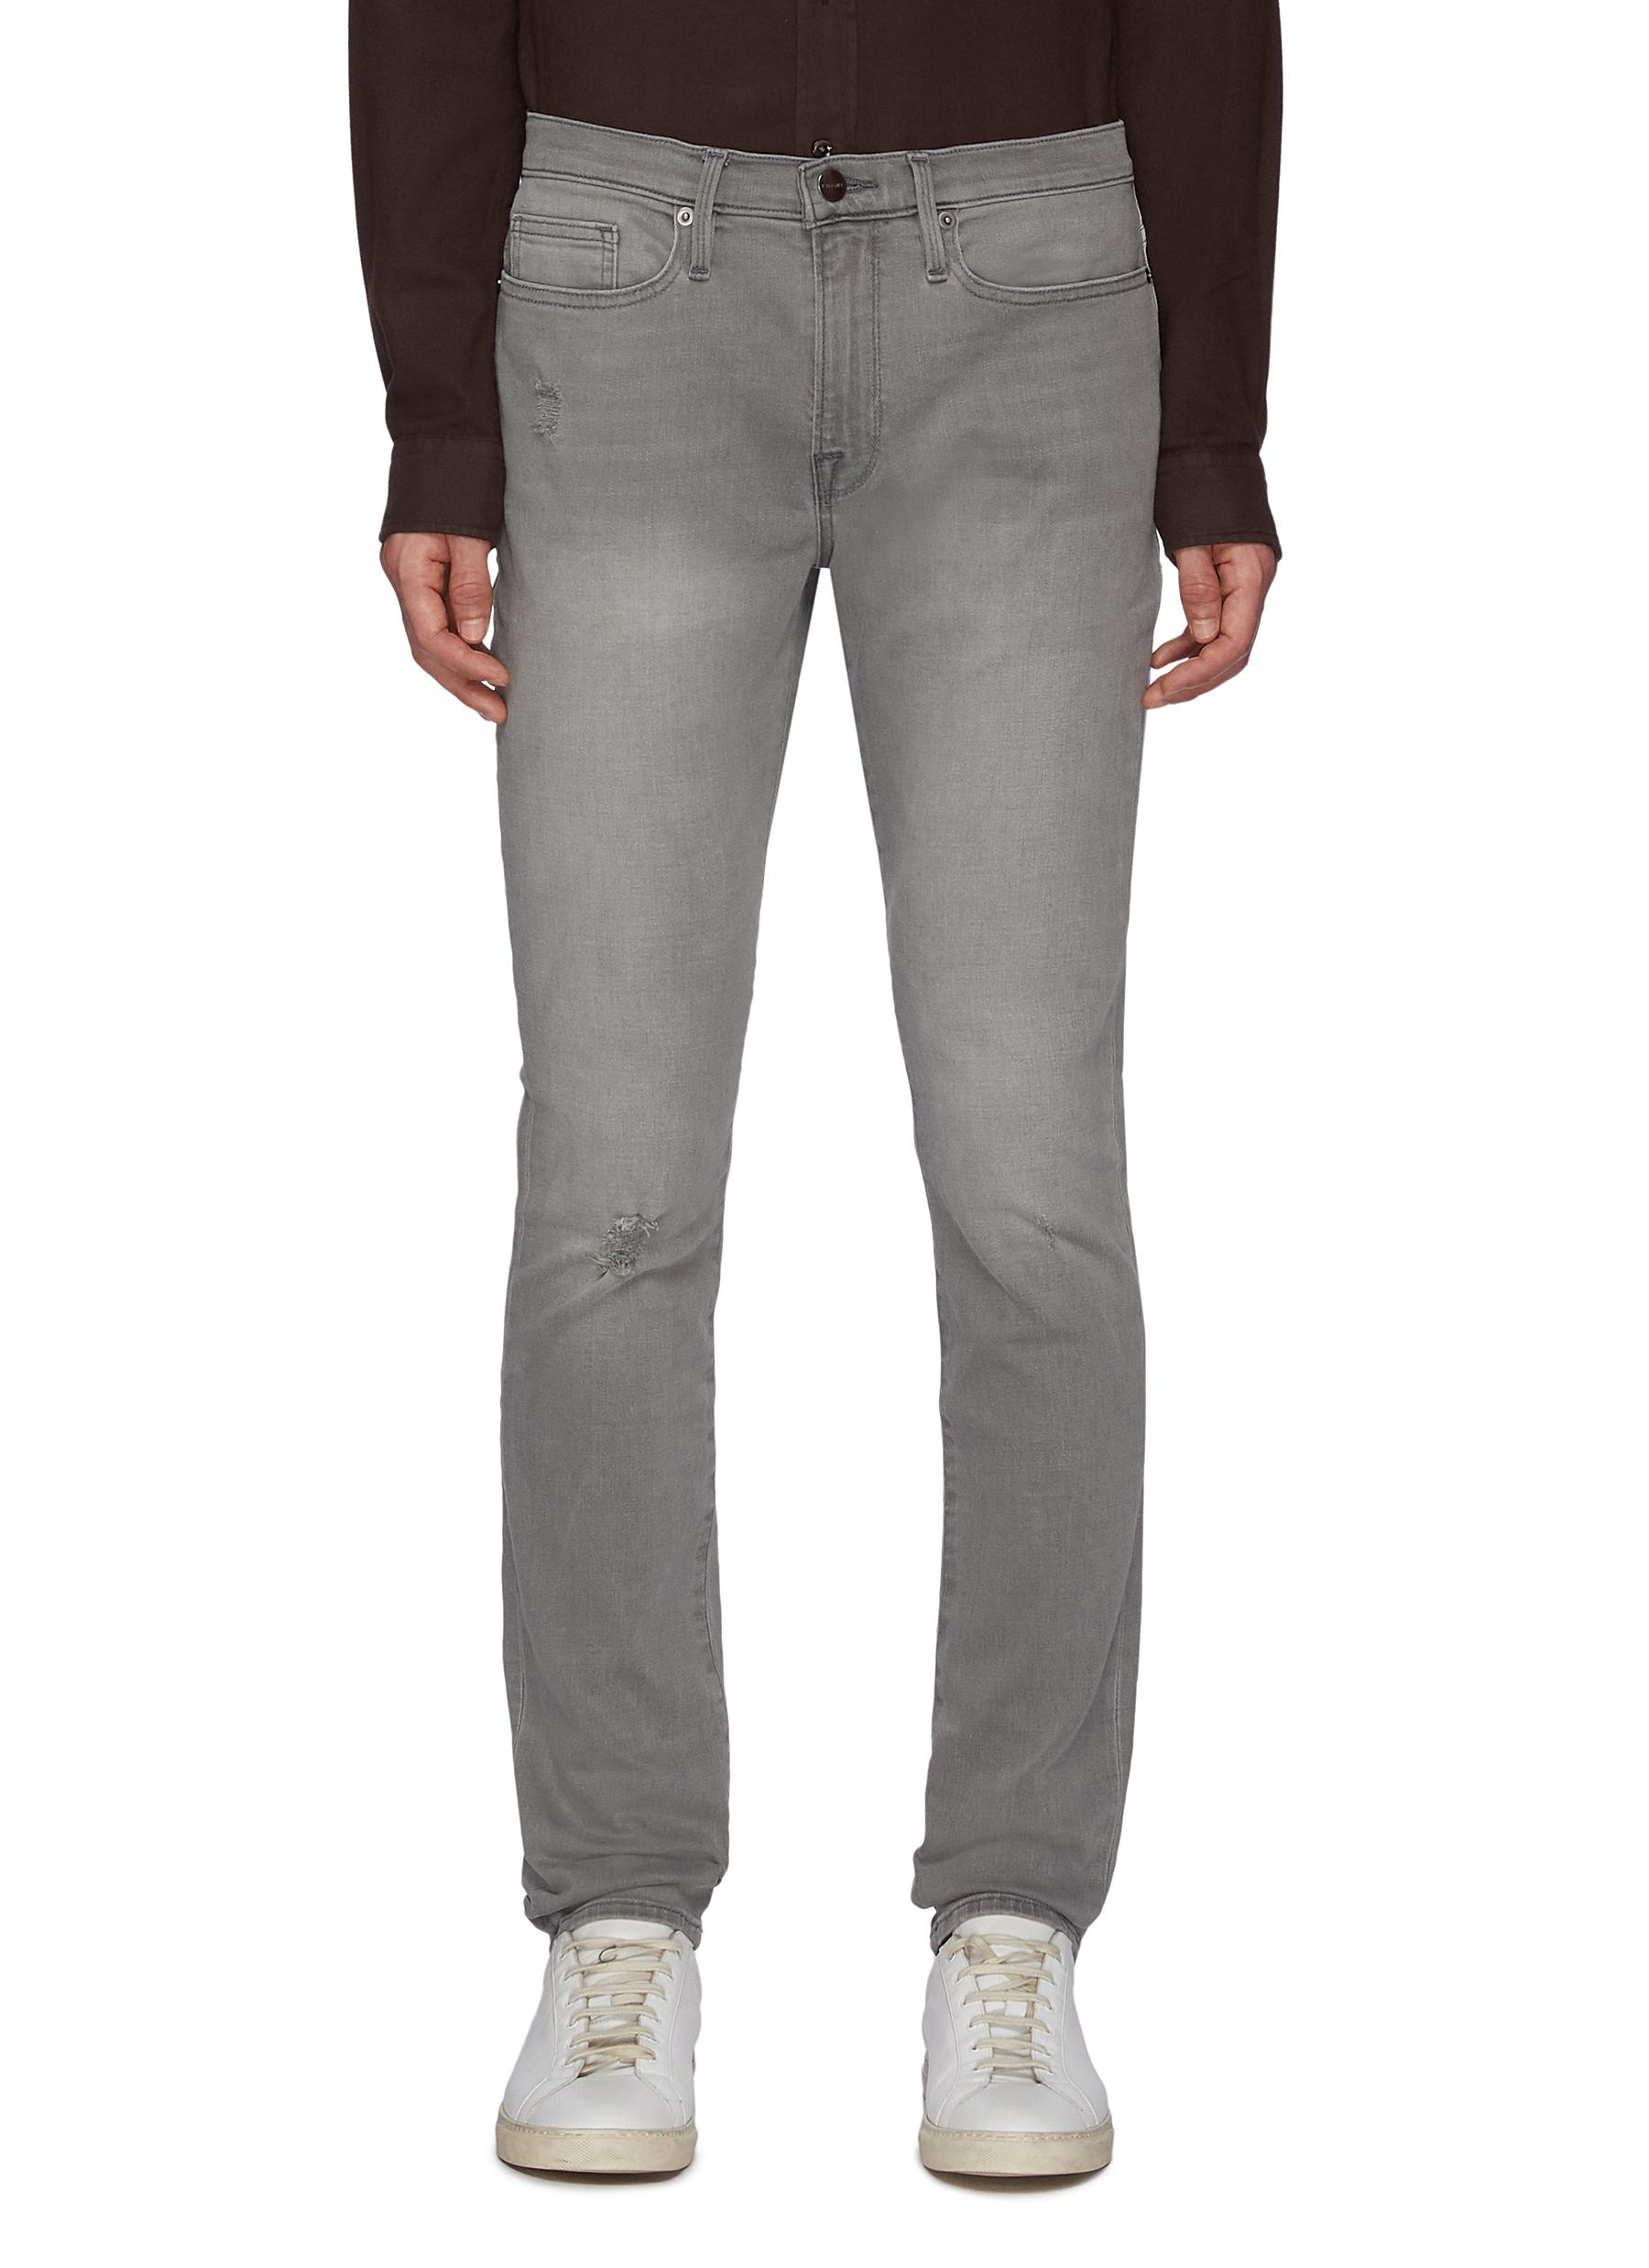 L'Homme' Ripped Washed Skinny Jeans